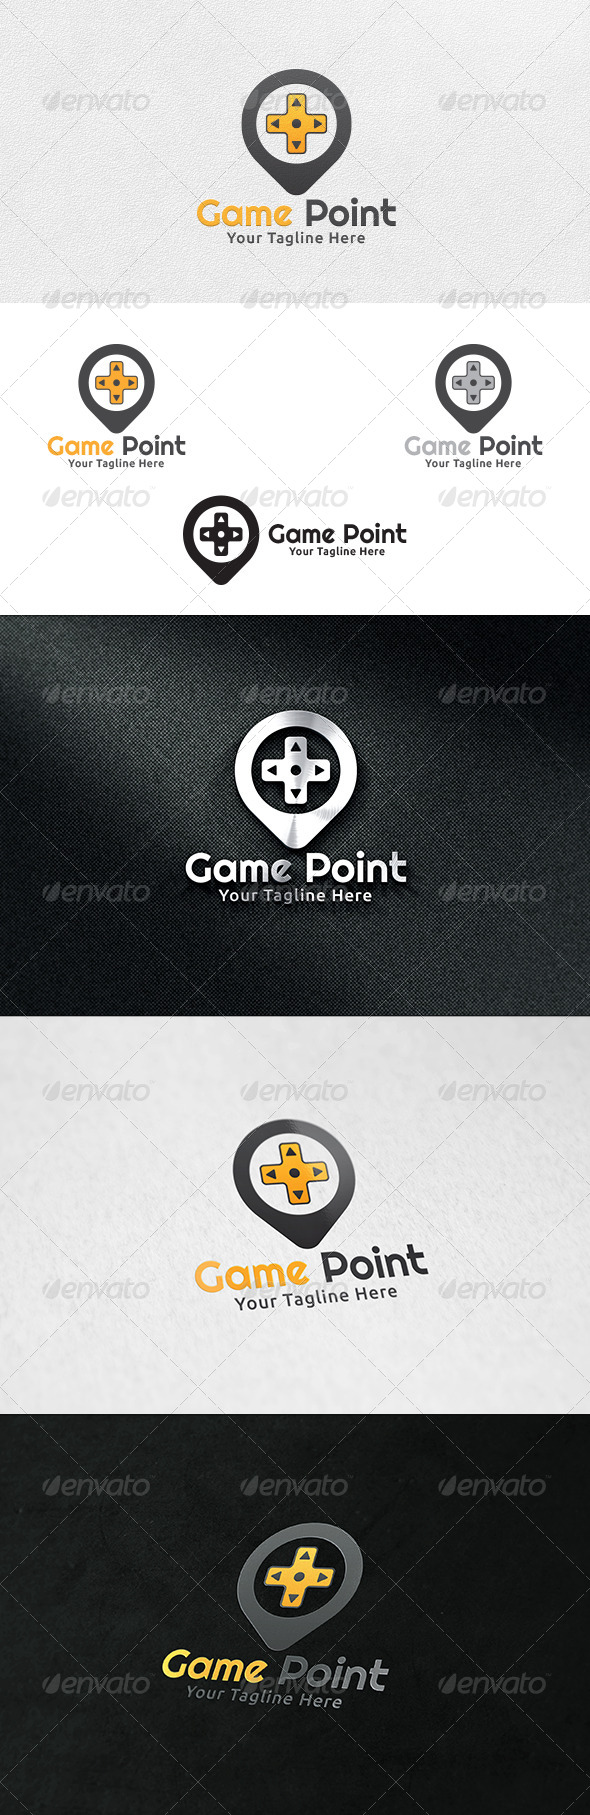 GraphicRiver Game Point Logo Template 6405993